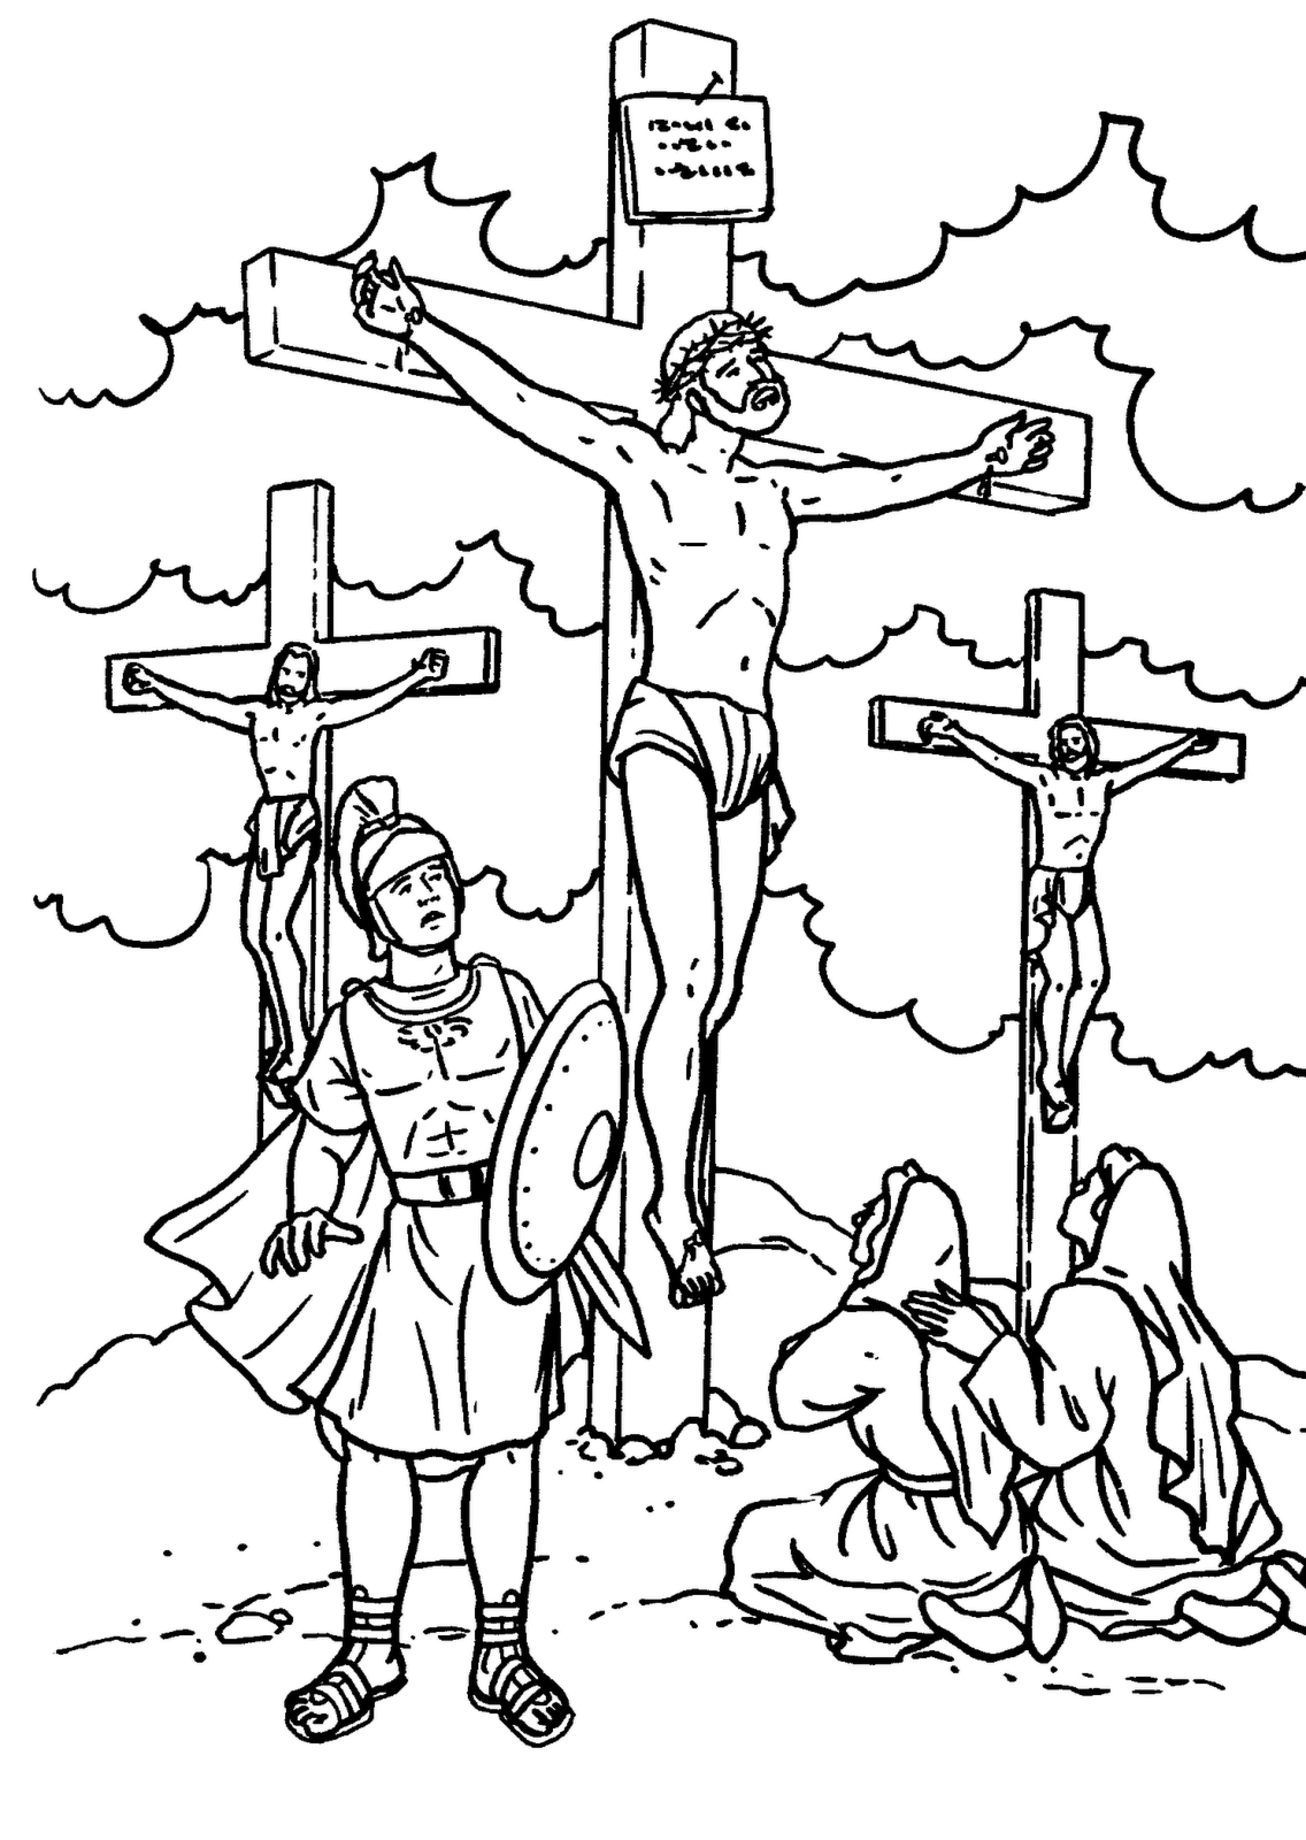 Printable coloring pages religious items - Lesson 9 Jesus Is Crucified Jesus On The Cross 2 3 Year Olds 4 5 Year Olds